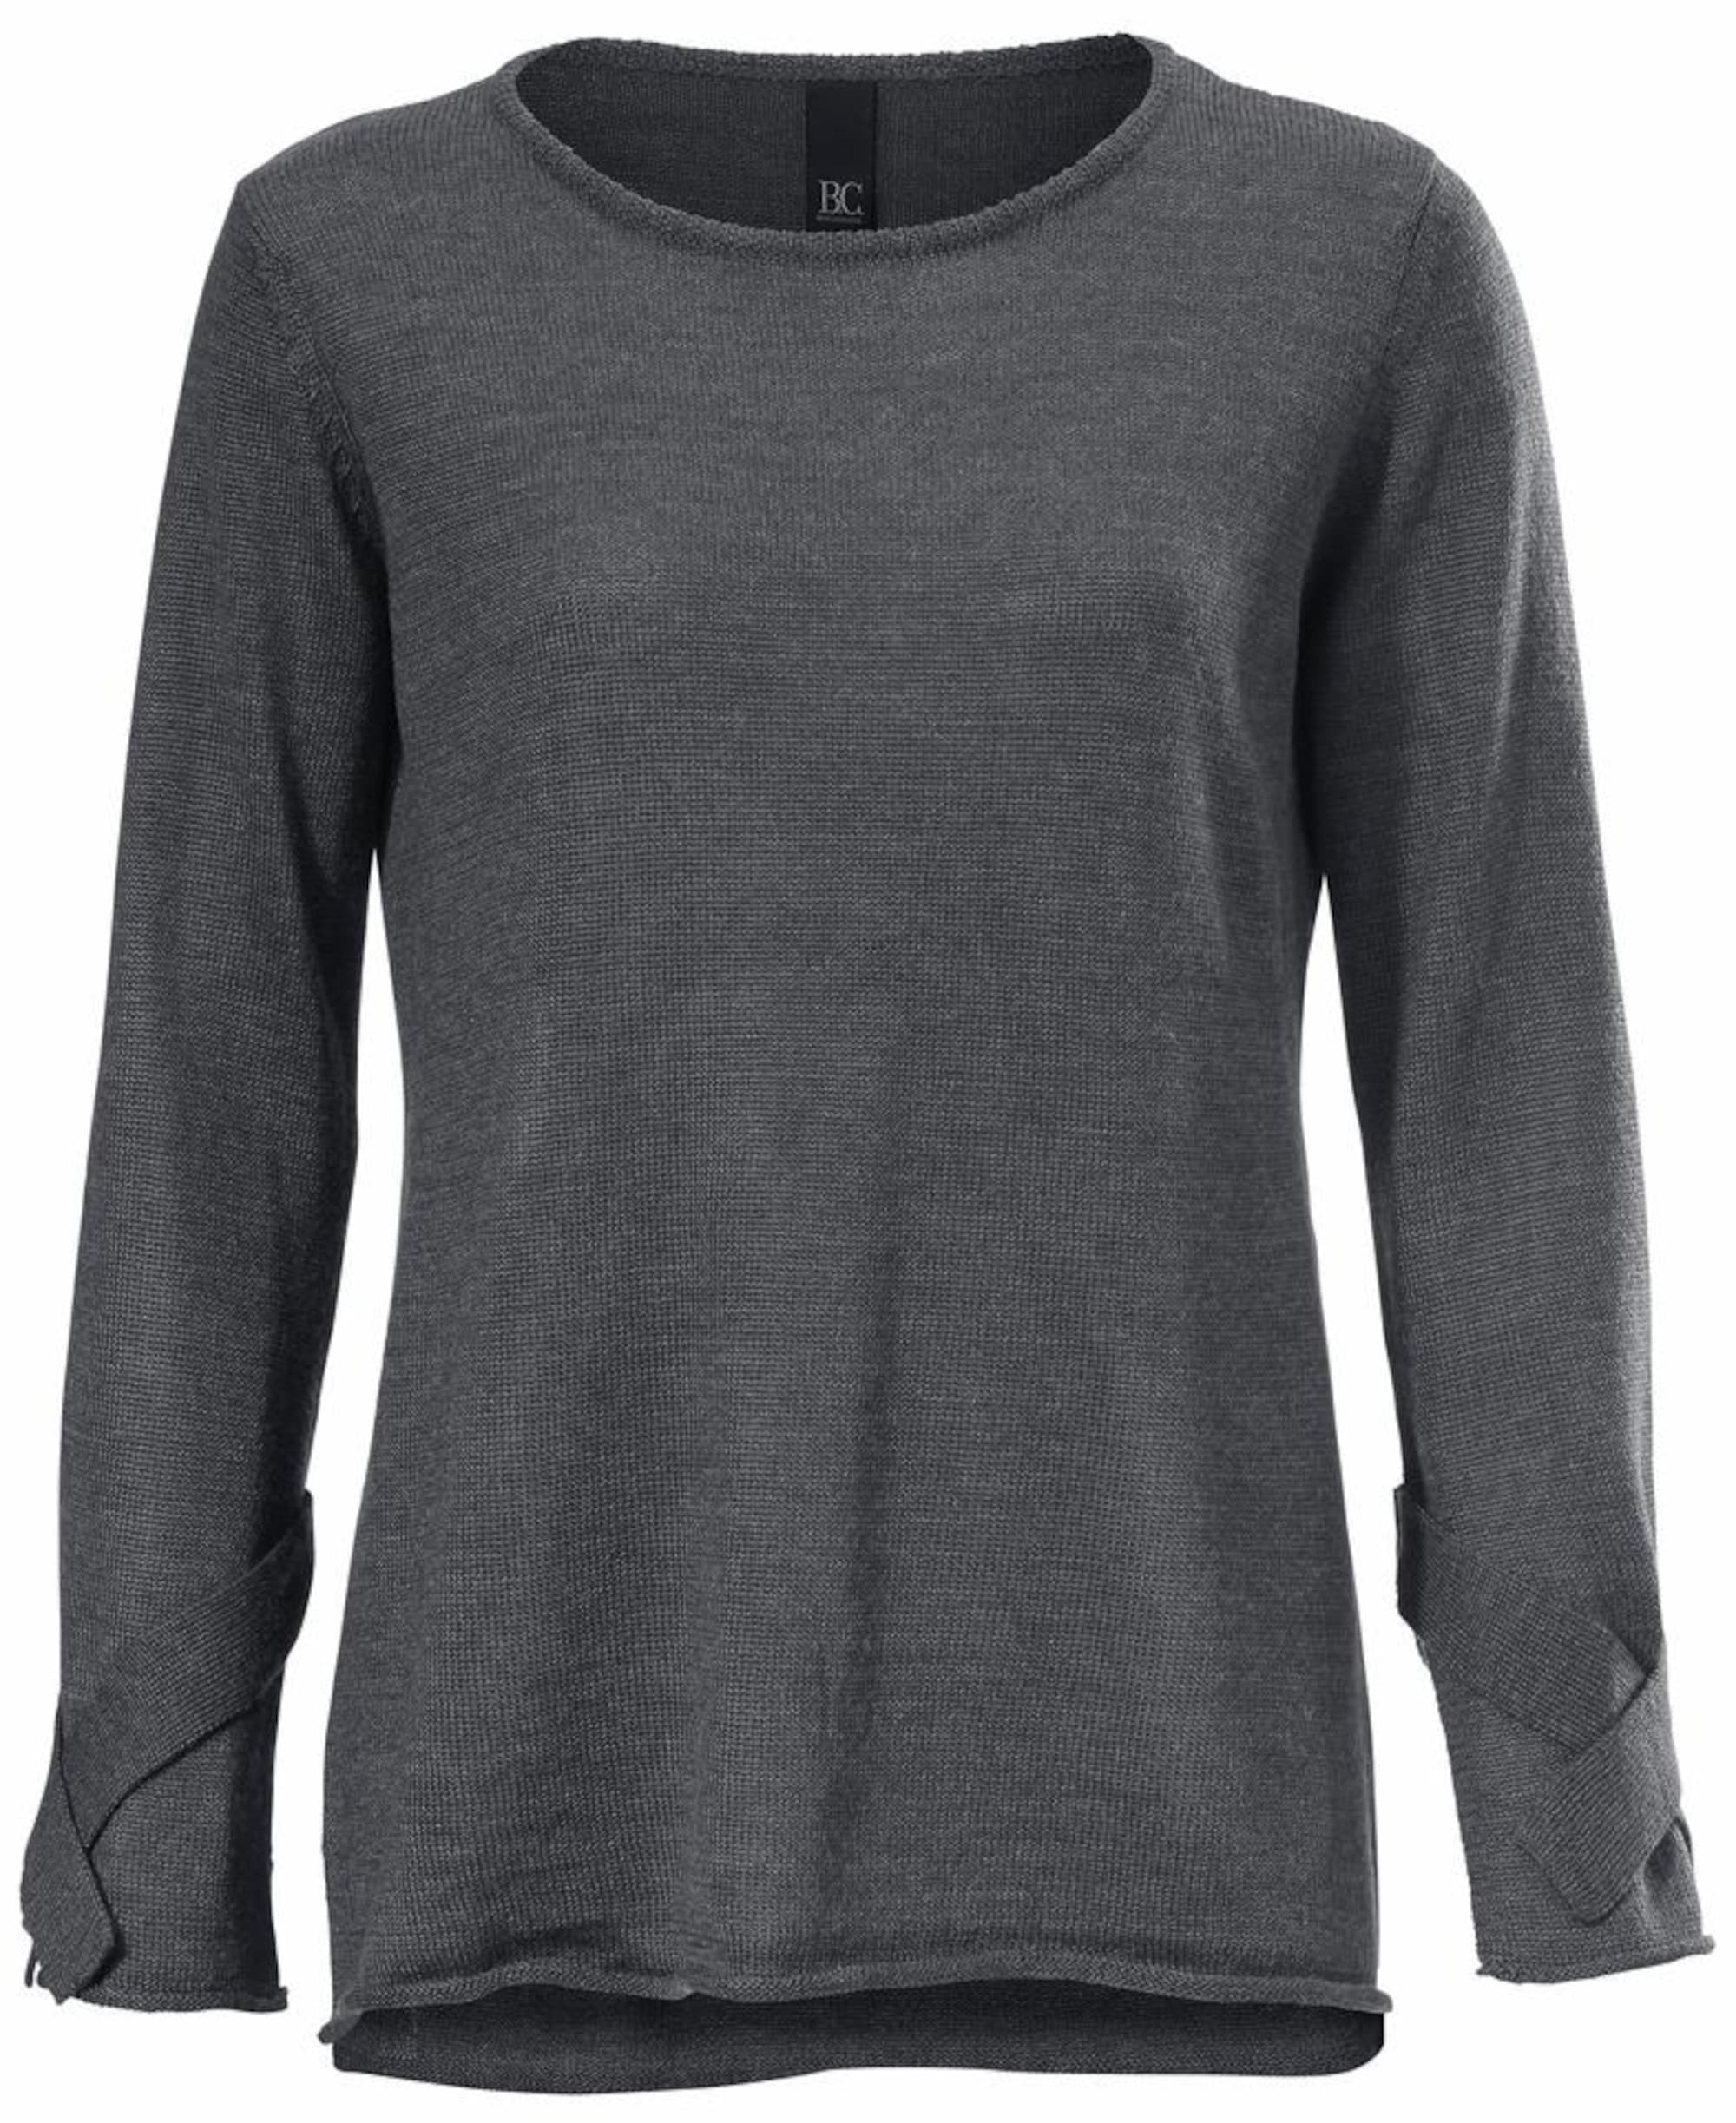 Oversized-Pullover mit Wolle